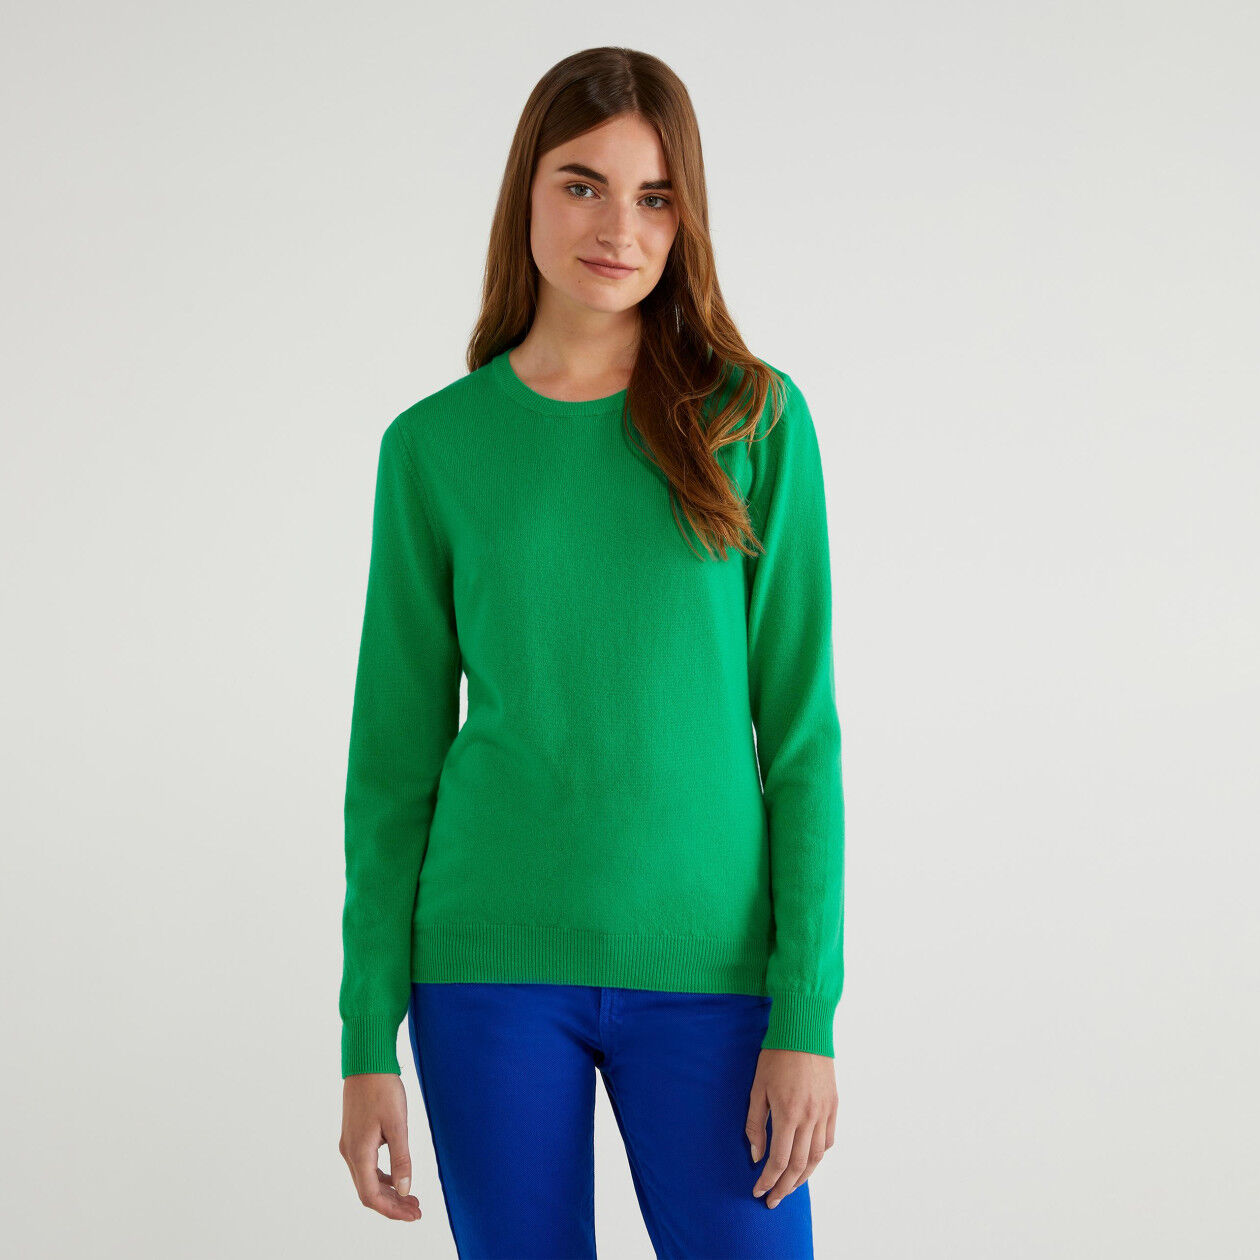 100% virgin wool crew neck sweater